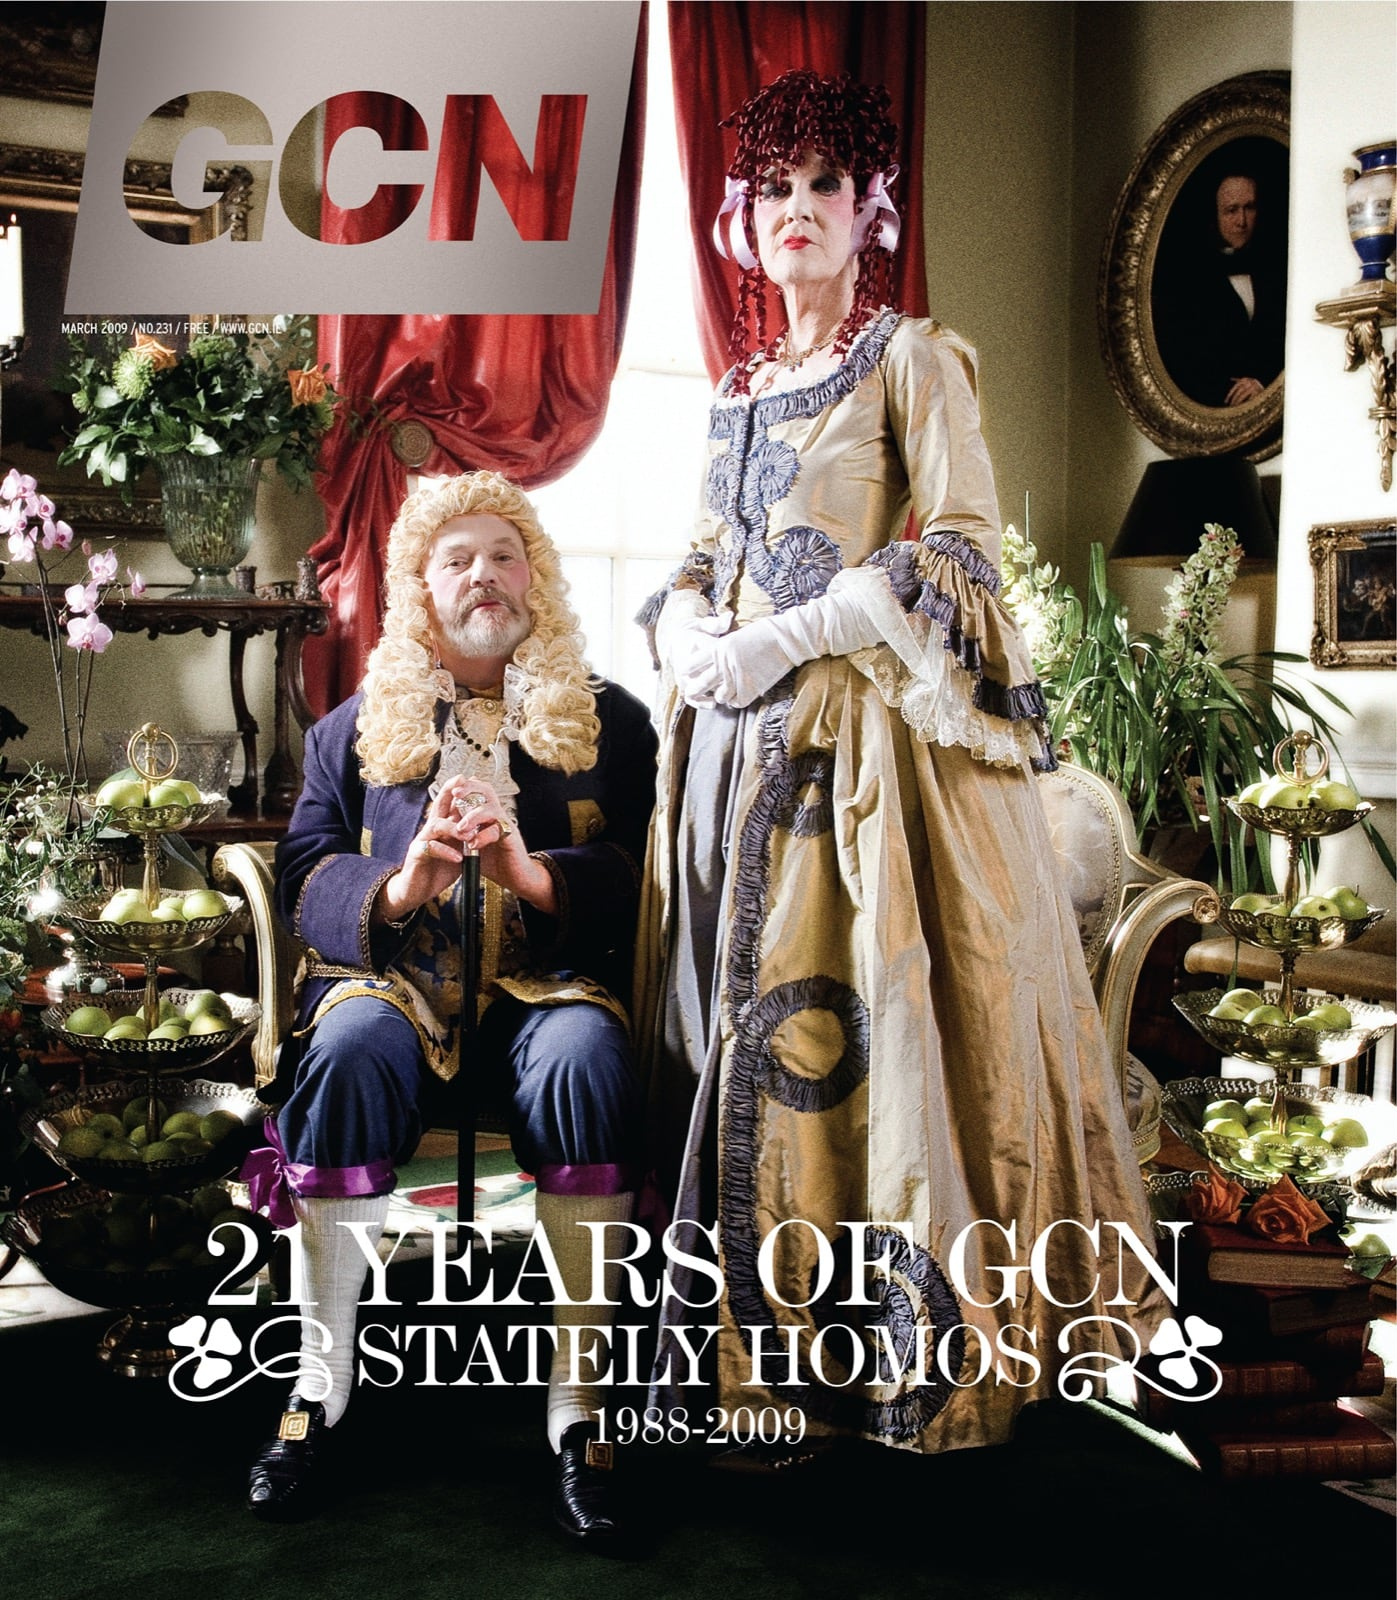 Some of GCN's covers from 2003 with two queer people in 18th century period costume.